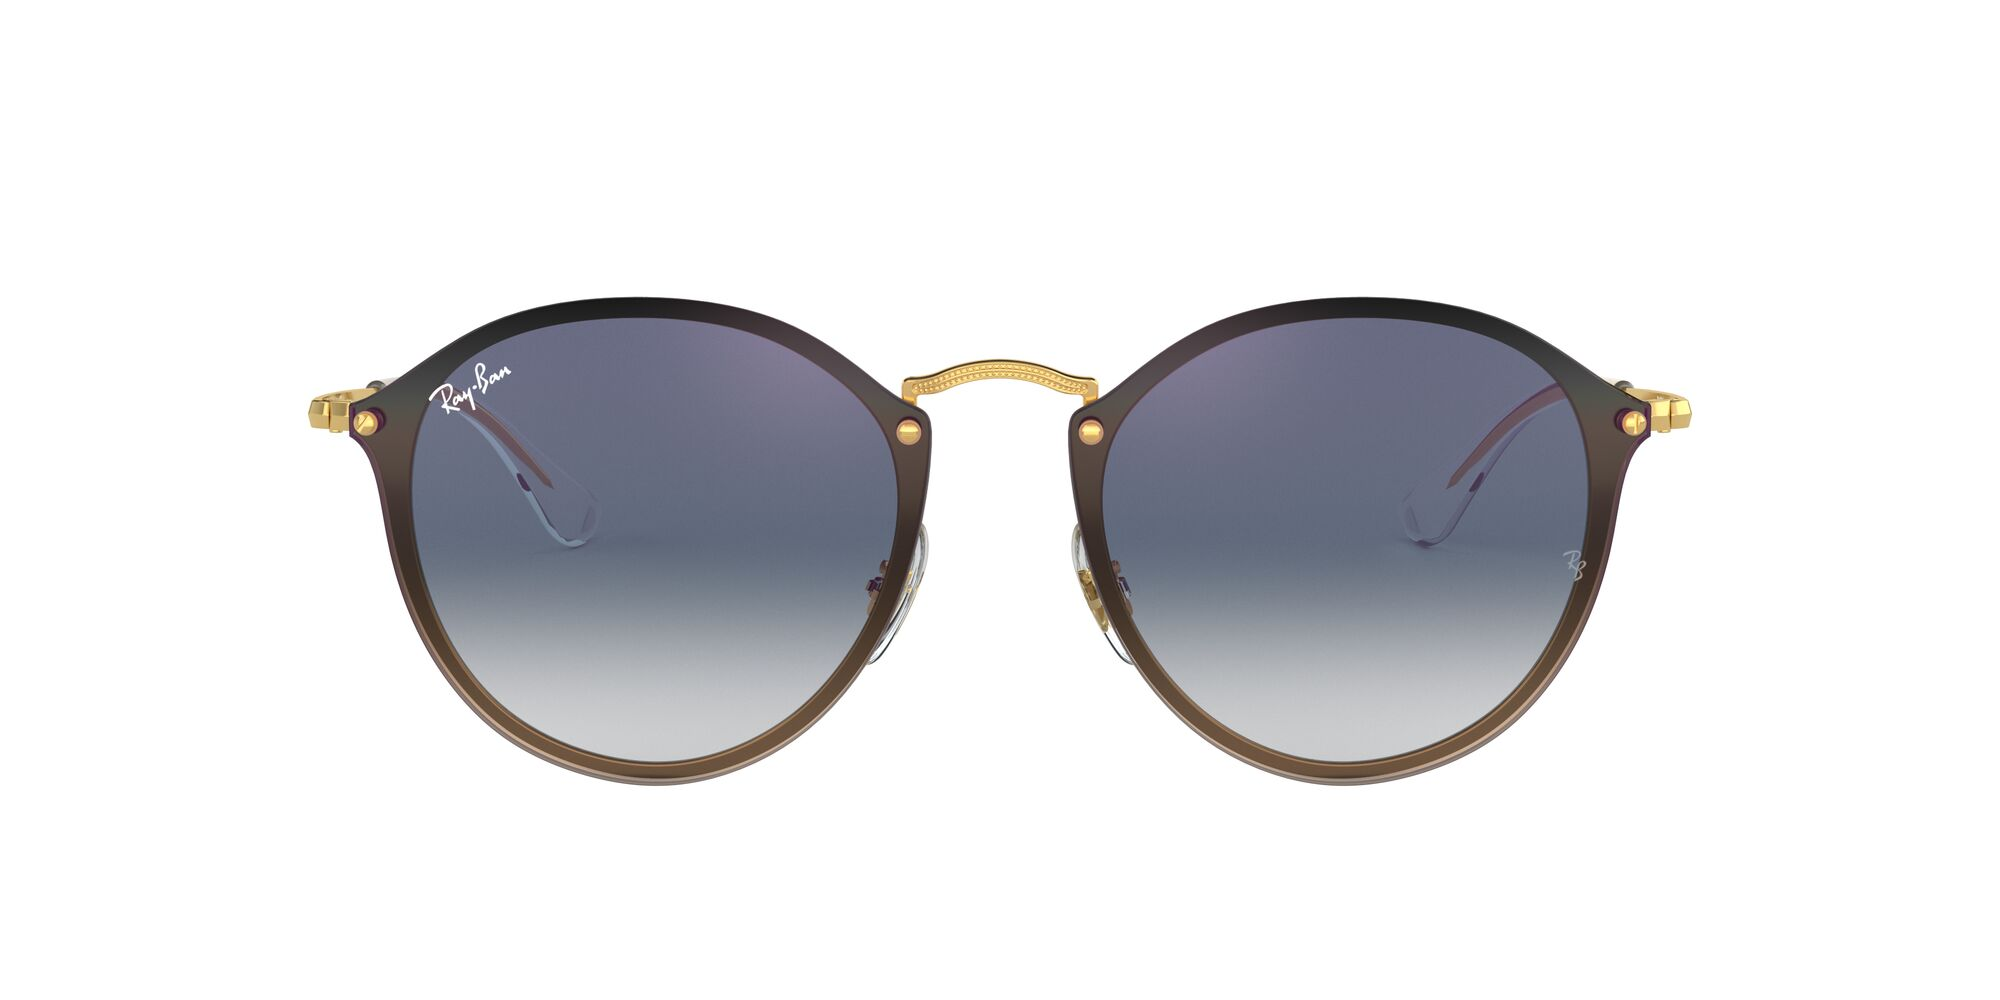 Front Ray-Ban Ray-Ban 0RB3574N 001/X0 59/14 Goud/Blauw